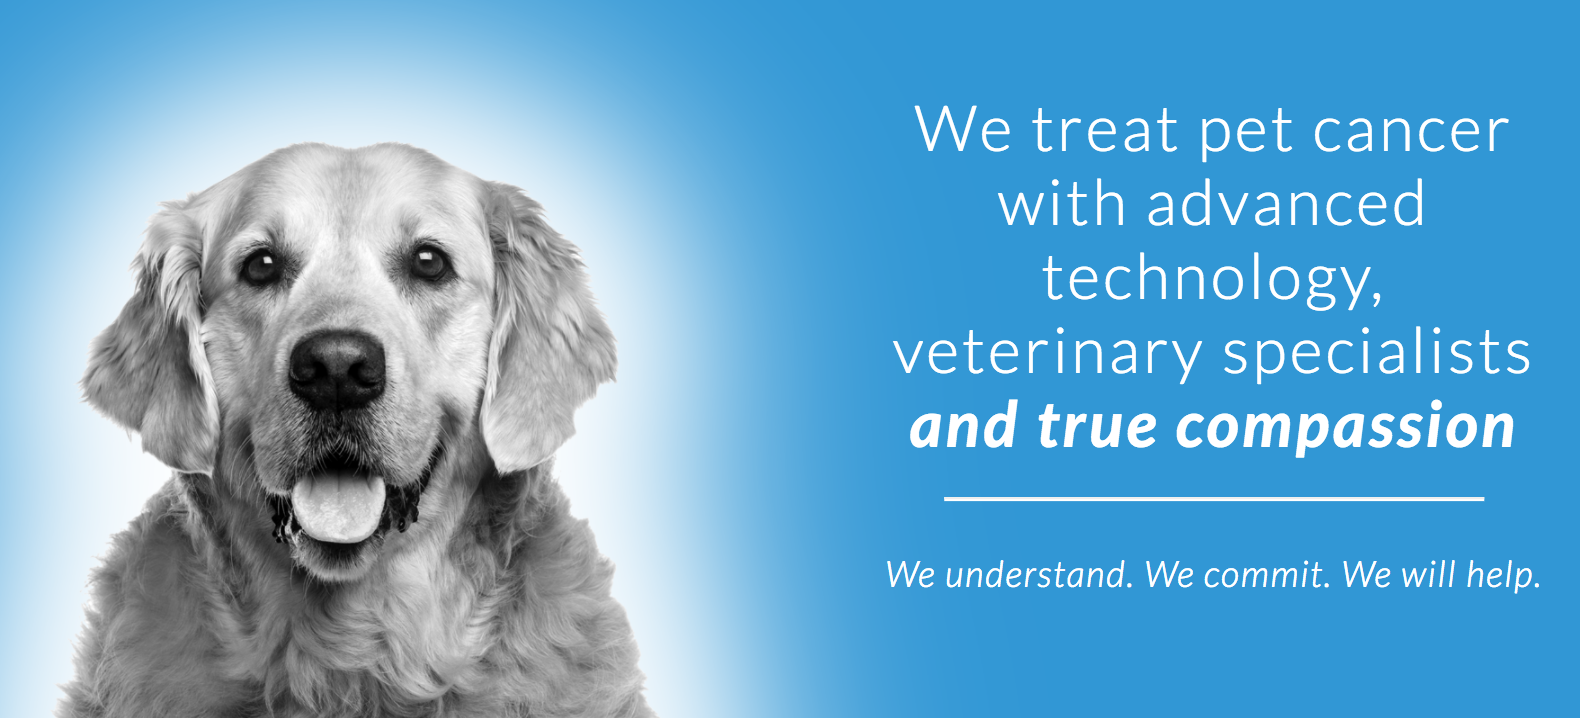 If your pet has been diagnosed with cancer, contact a